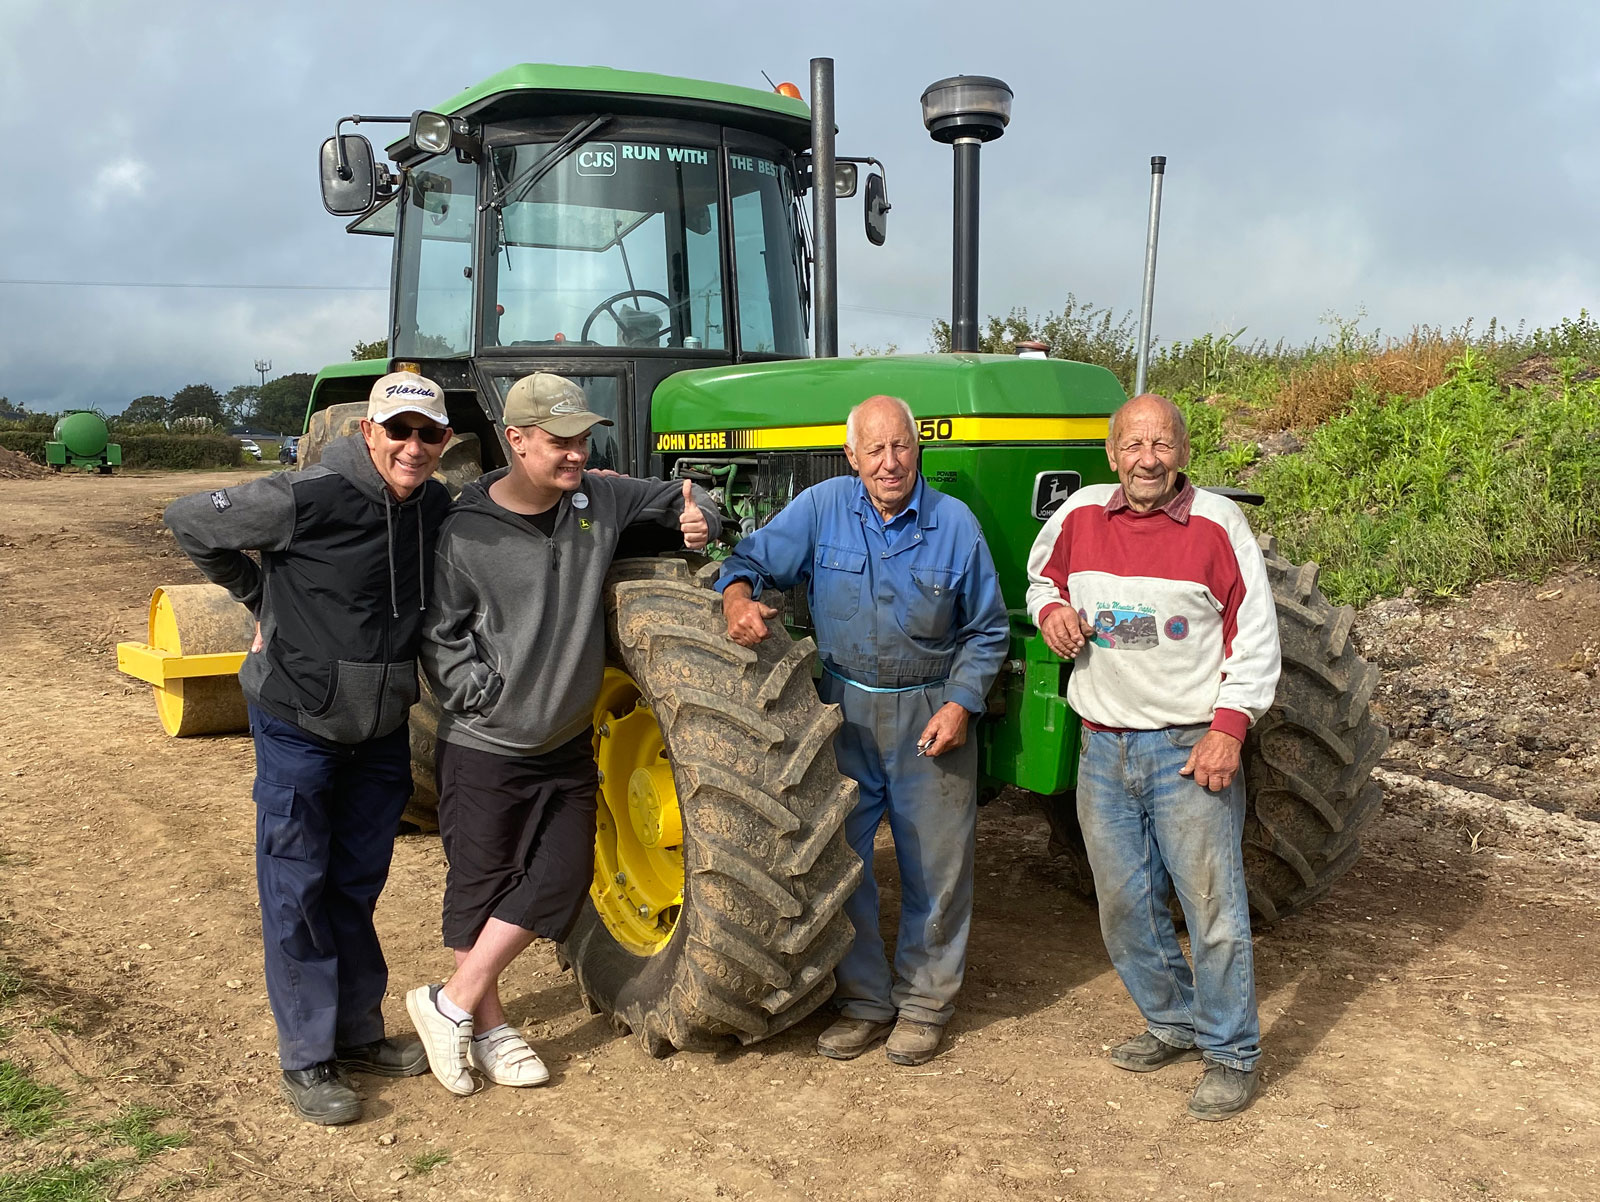 Hospiscare Heroes – From ploughing matches to coffee mornings